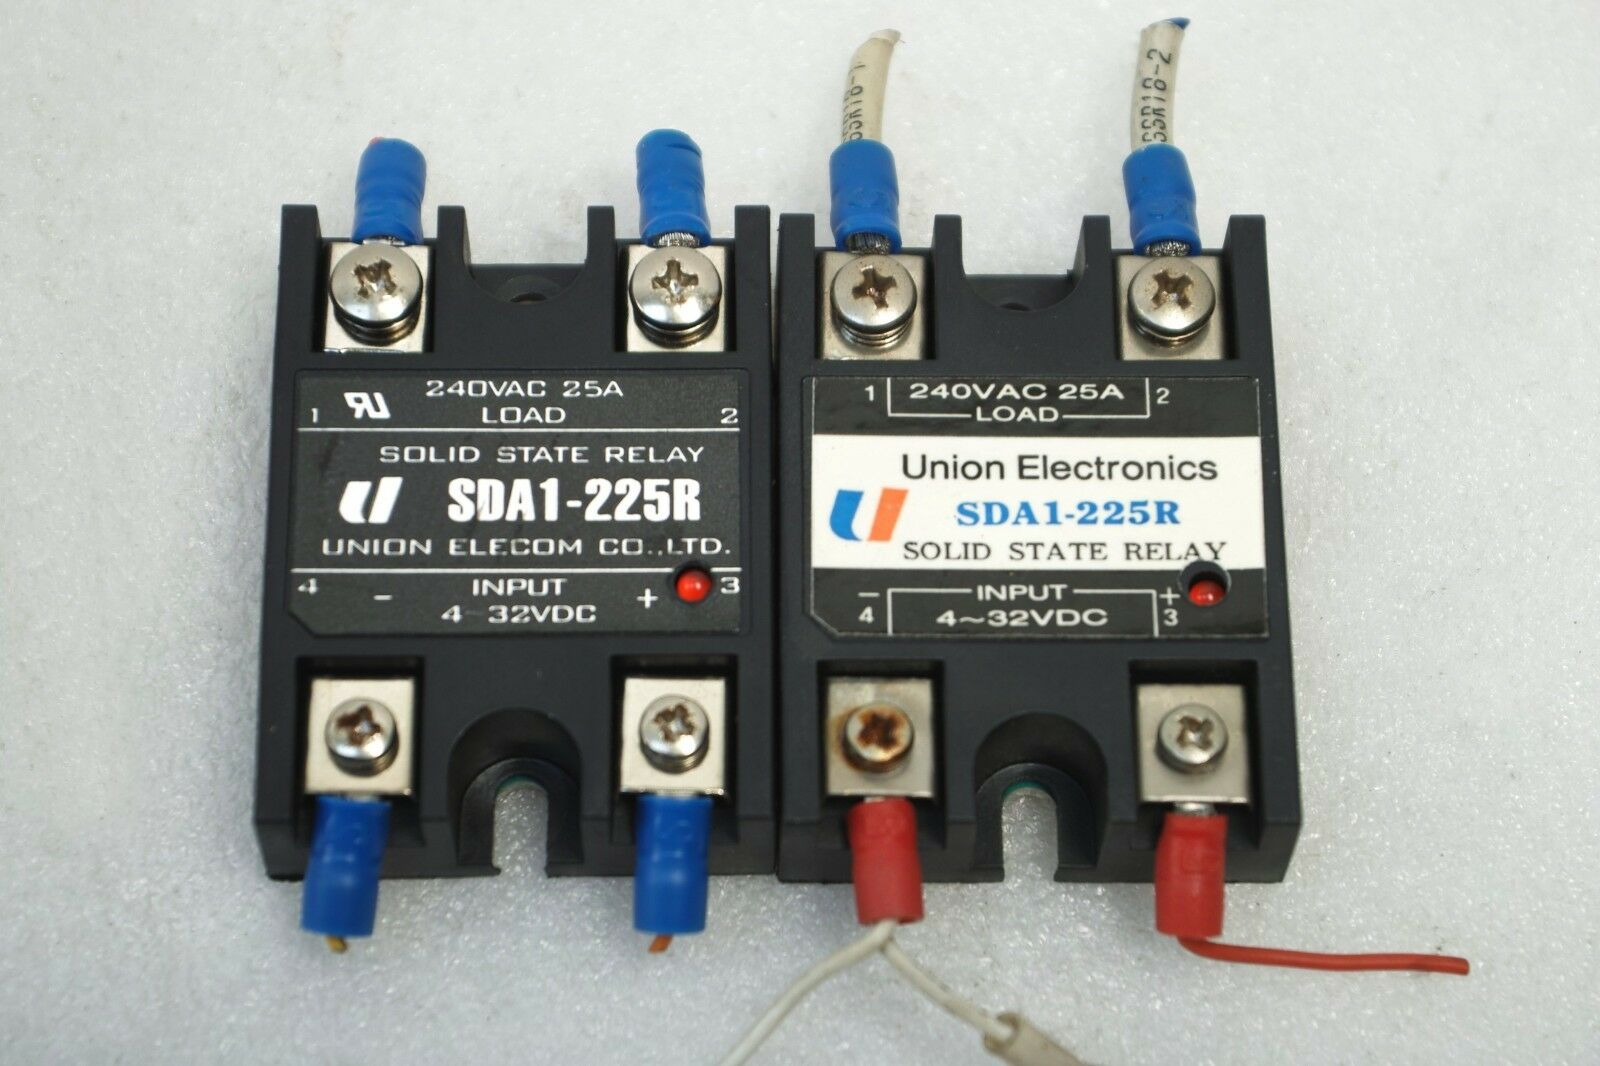 Union Electronics Solid State Relay Sda1 225r Lot Of 2 Kyotto Item Number 282247196433